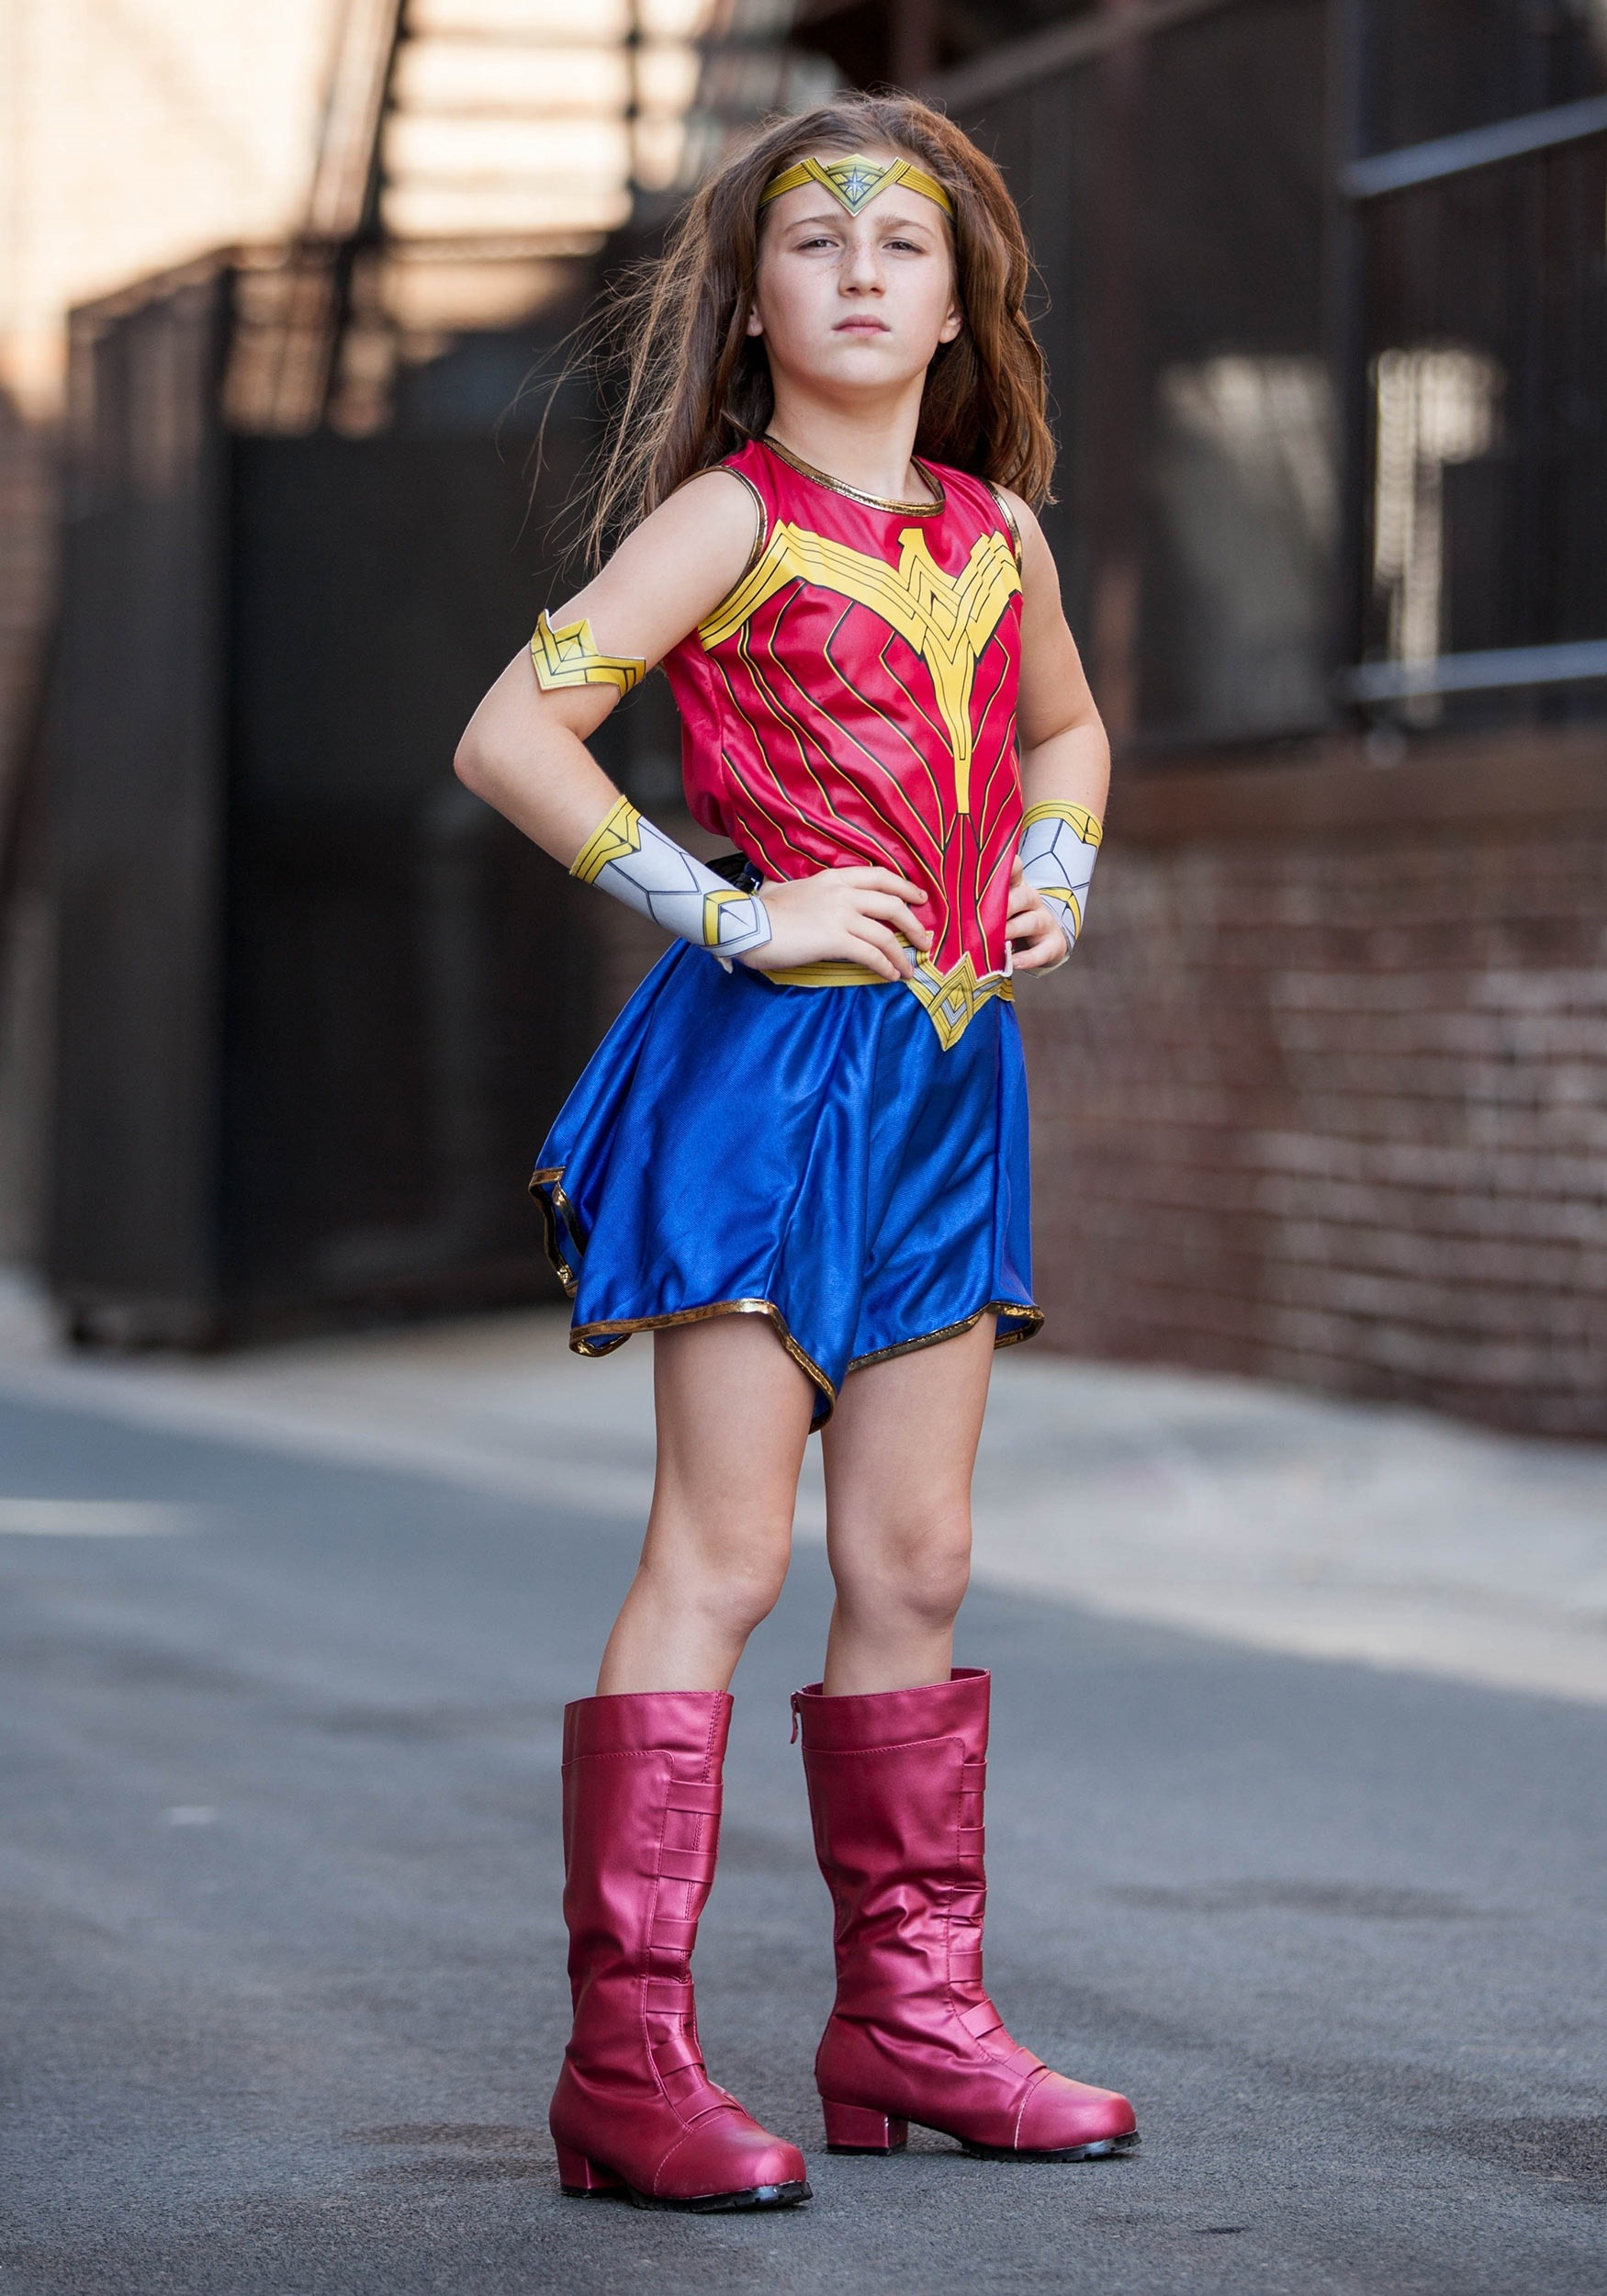 Child Dawn Of Justice Wonder Woman Costume-7845